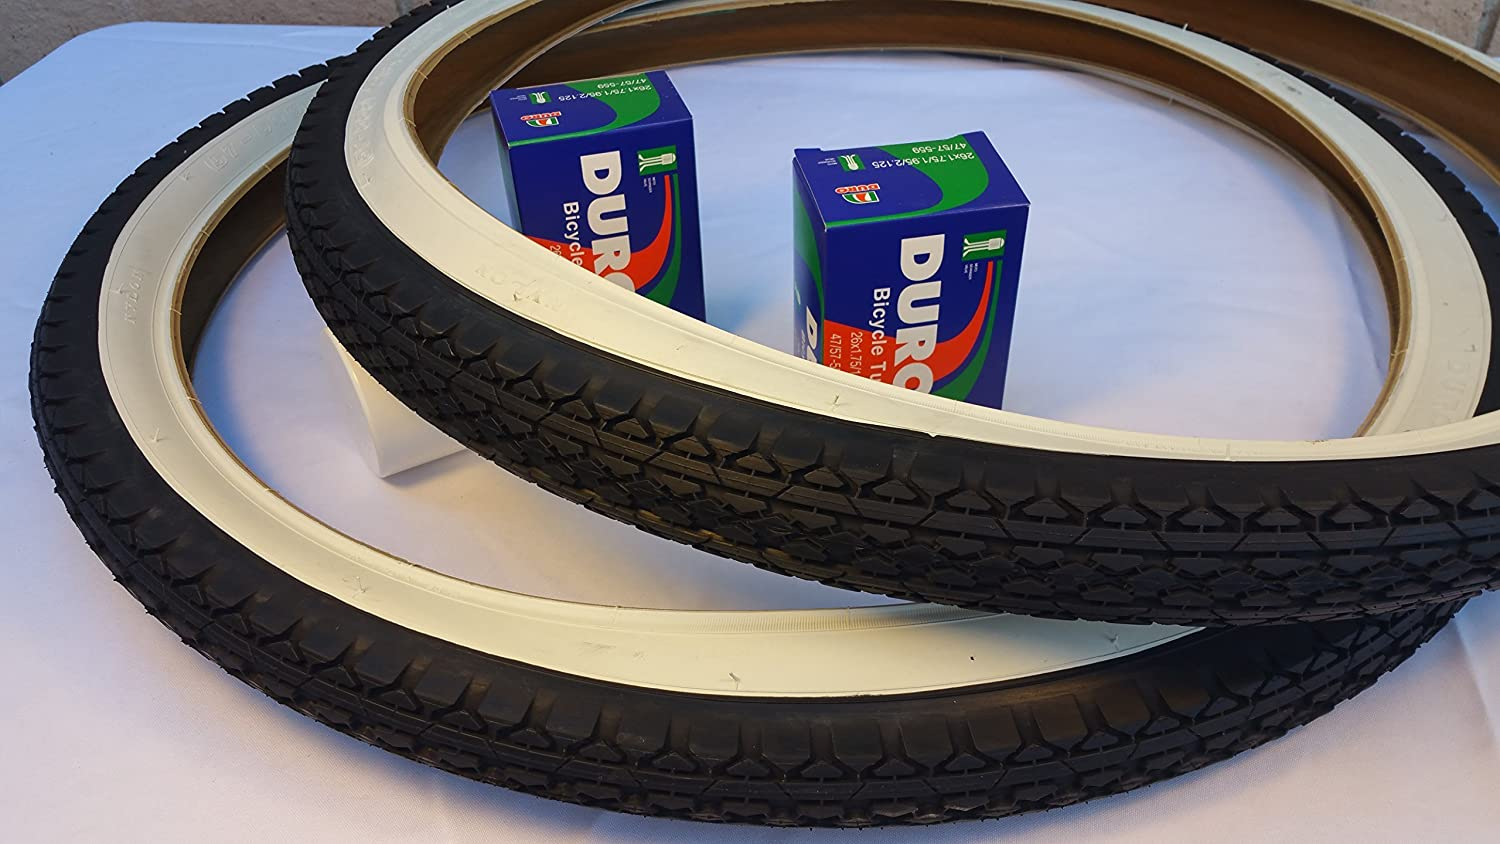 LINERS FOR 2 2 MTB TUBES /& 26/'/' X 1.95 GUM-WALL BICYCLE TIRES, CRUISER